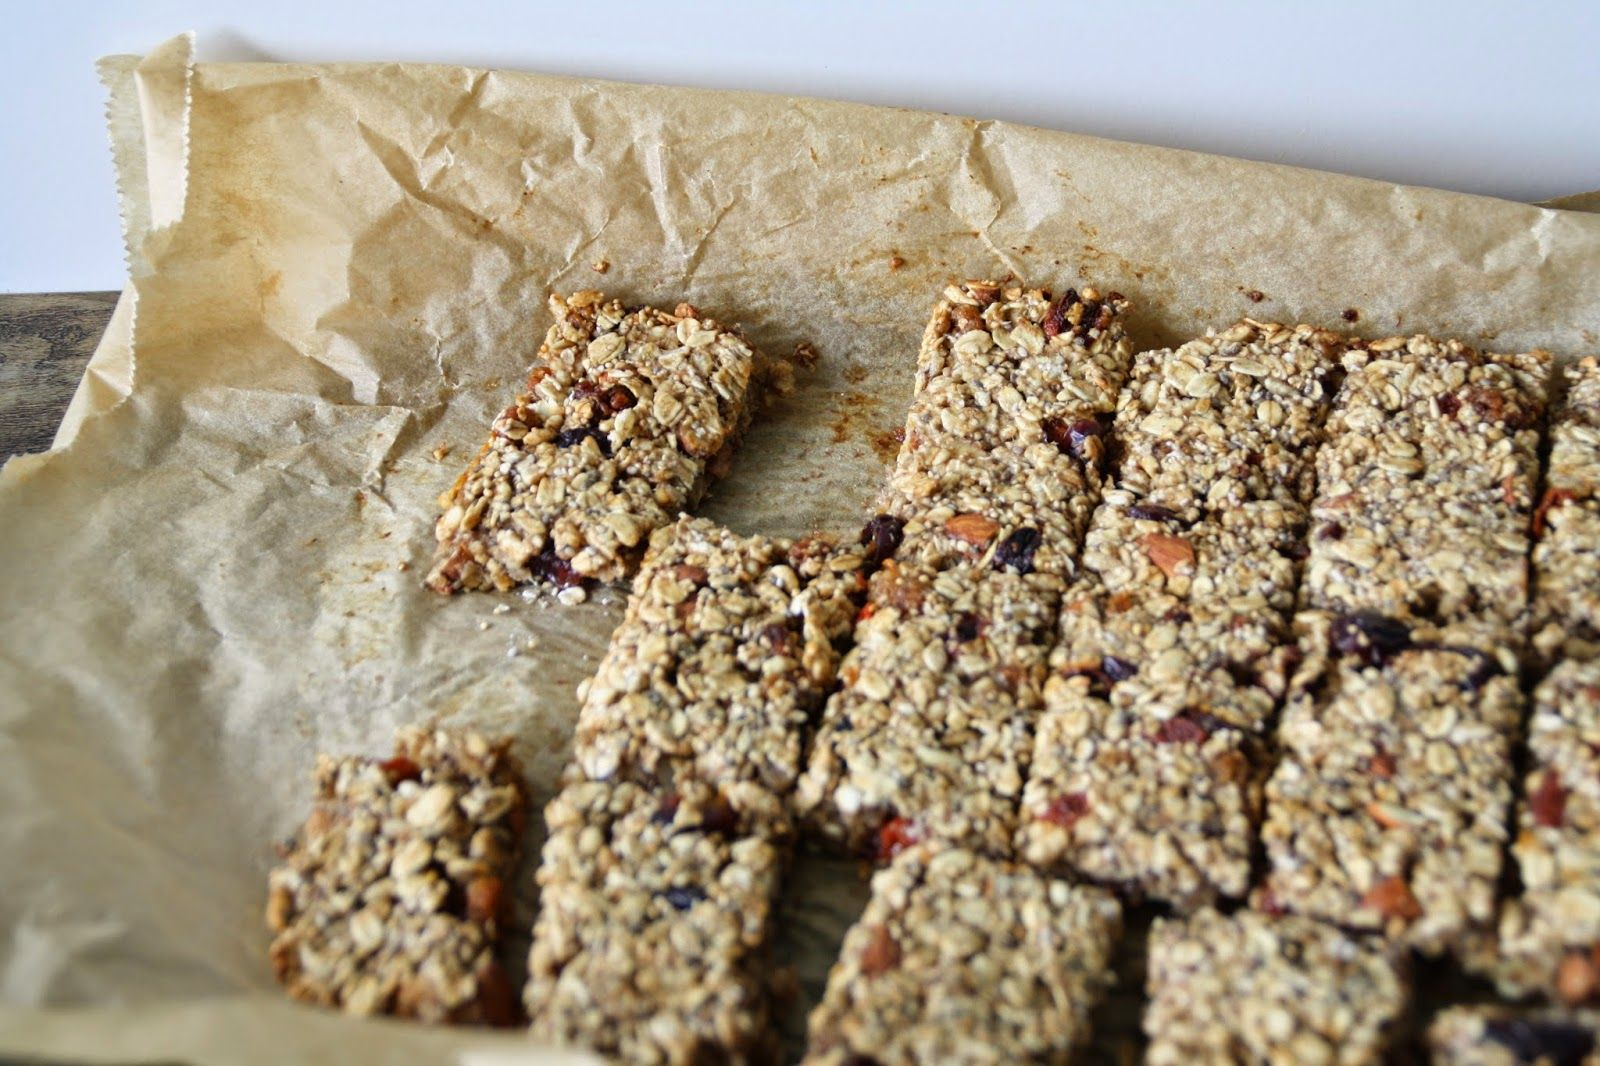 Melis colorful students Kitchen: Homemade granola bars